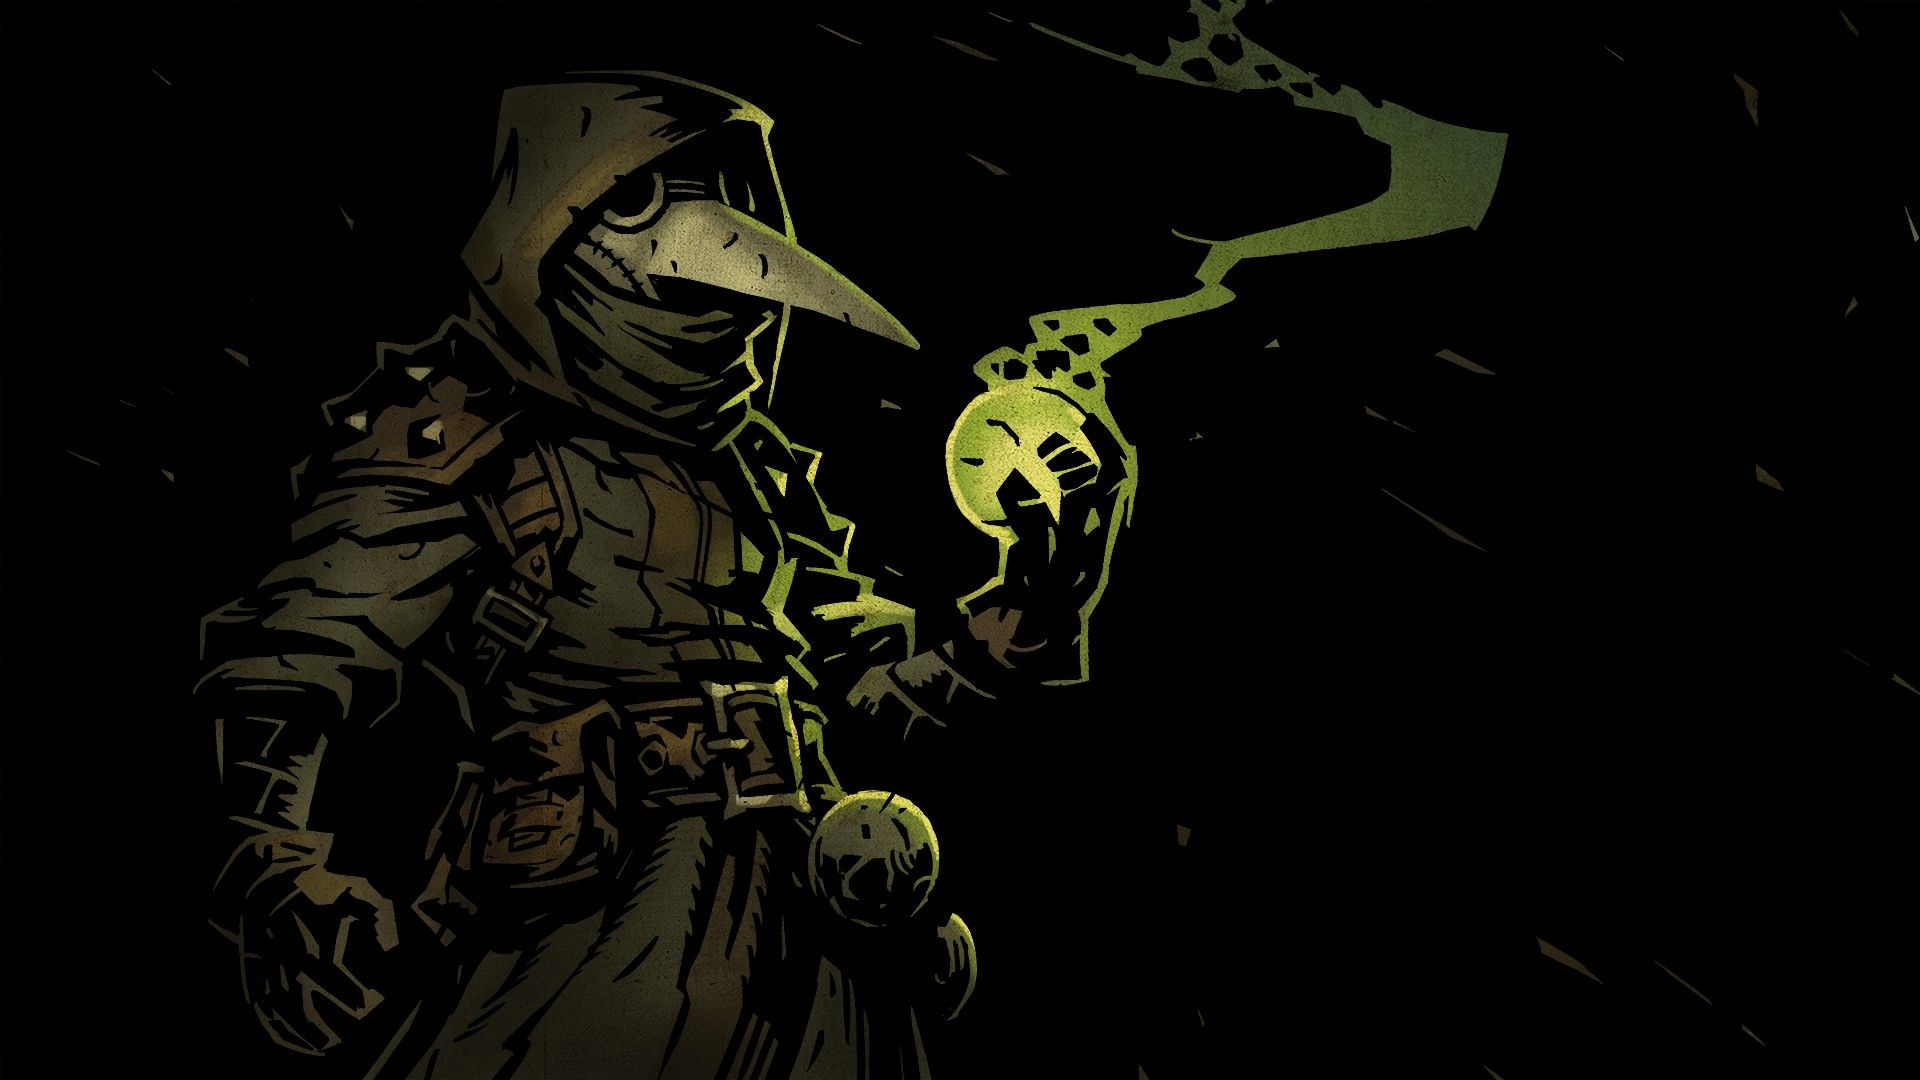 Darkest Dungeon Decorative Urn Awesome Video Games Are Tackling Mental Health With Mixed Results  Mental Inspiration